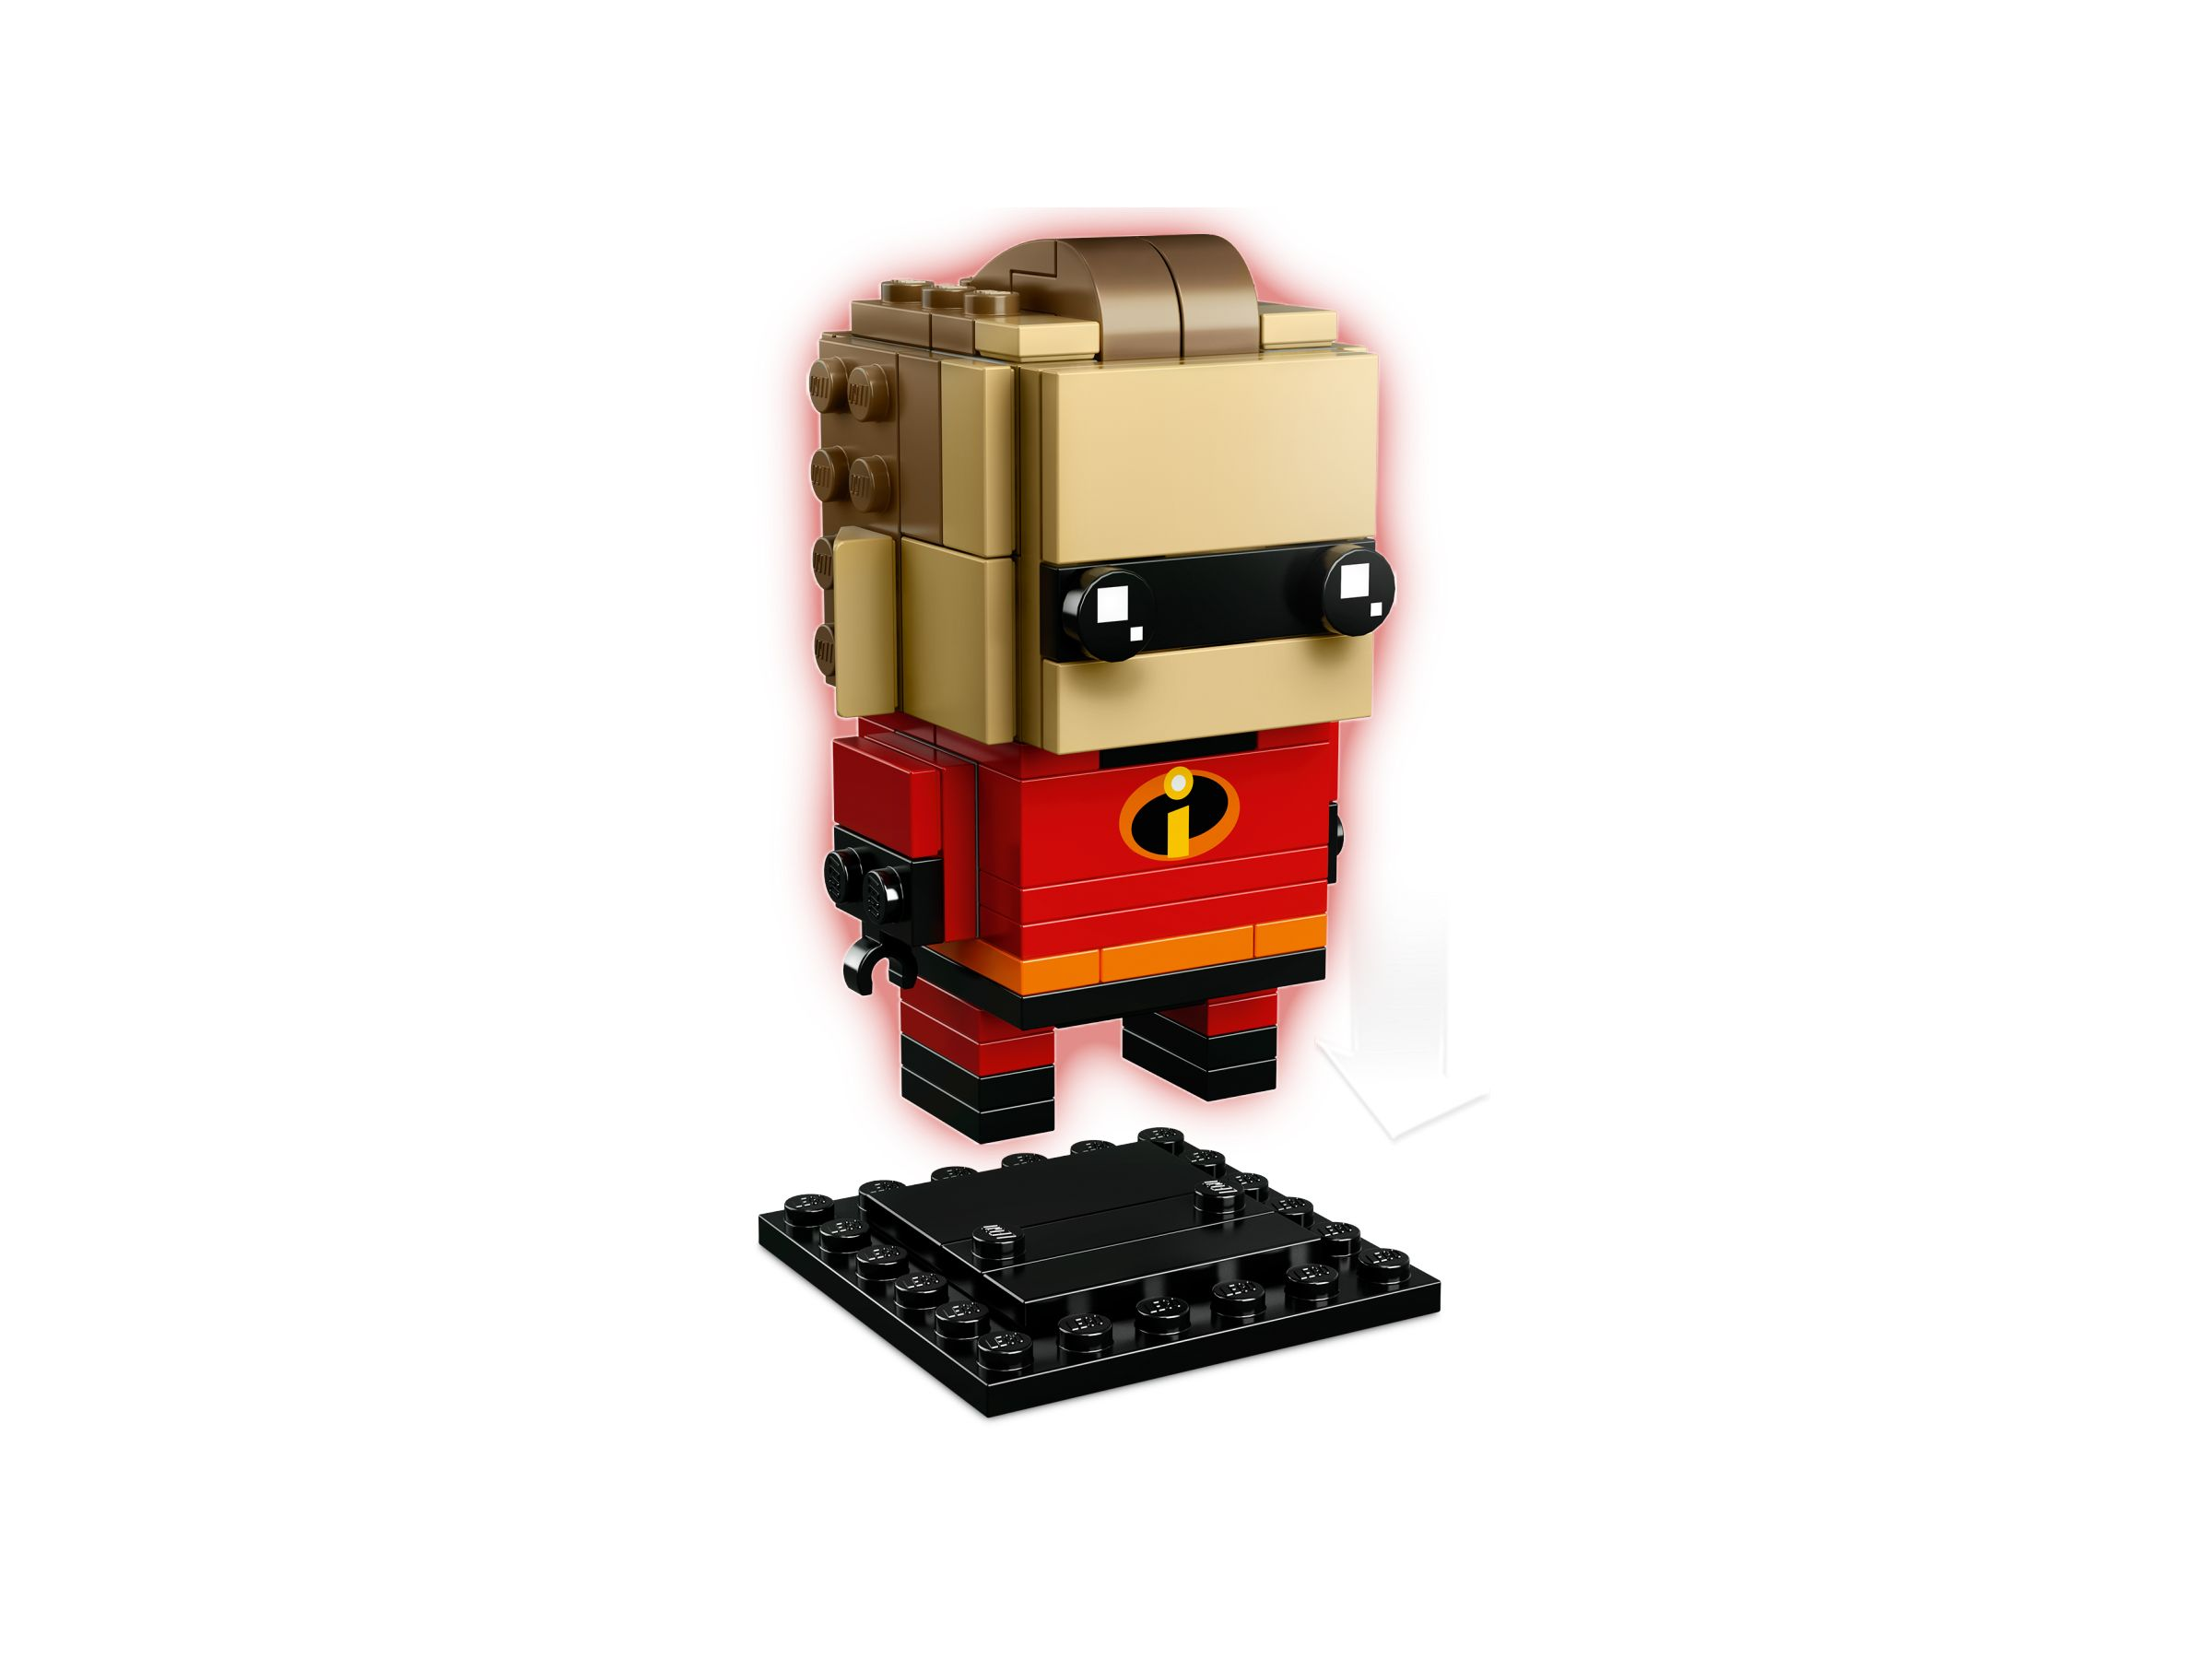 LEGO BrickHeadz 41613 Mr. Incredible und Frozone LEGO_41613_alt3.jpg